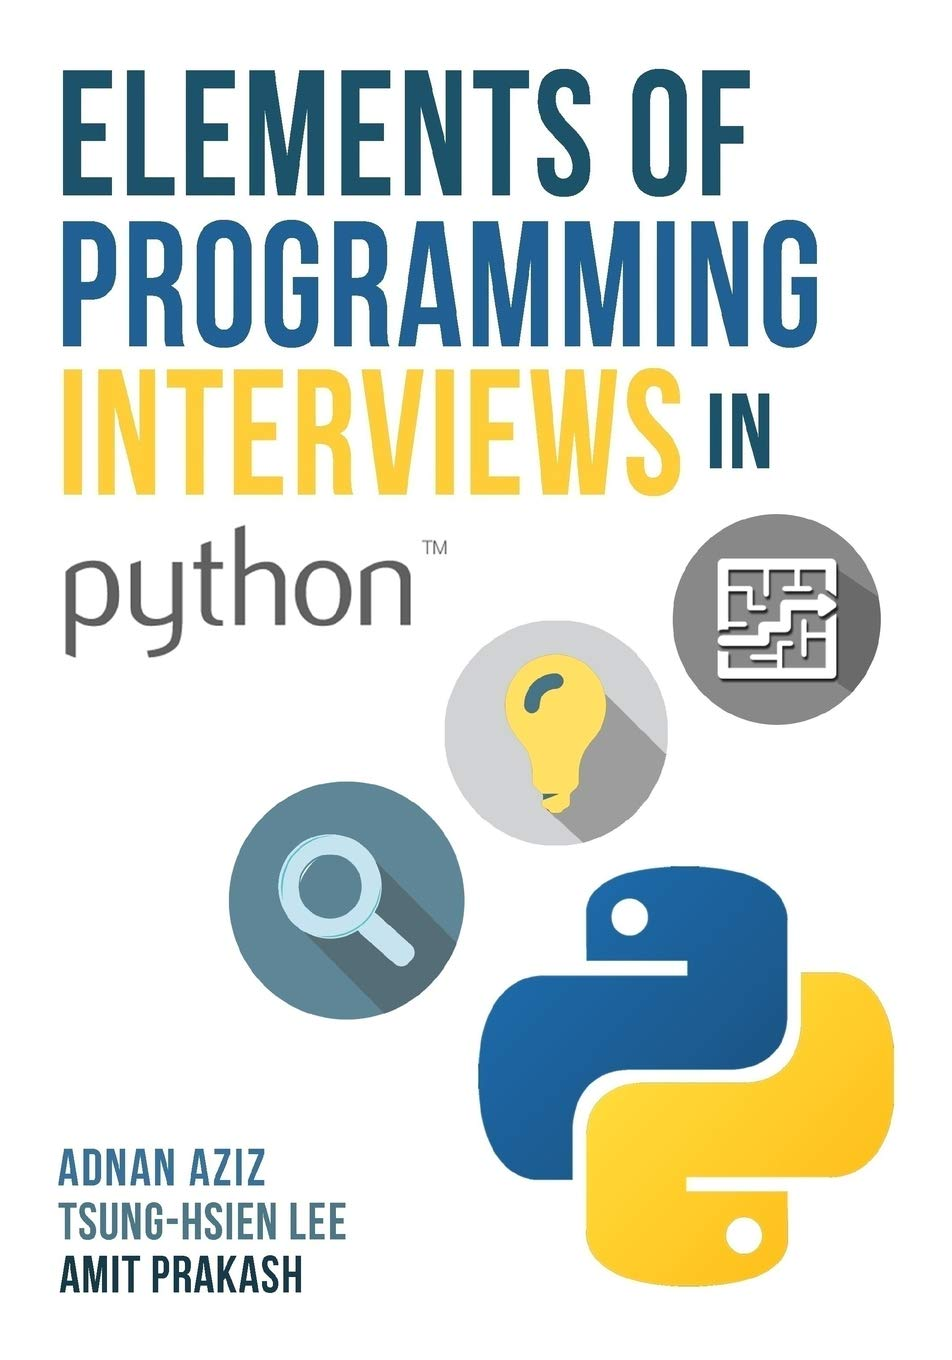 Elements of Programming Interviews in Python: The Insiders' Guide: Adnan  Aziz, Tsung-Hsien Lee, Amit Prakash: 9781537713946: Amazon.com: Books